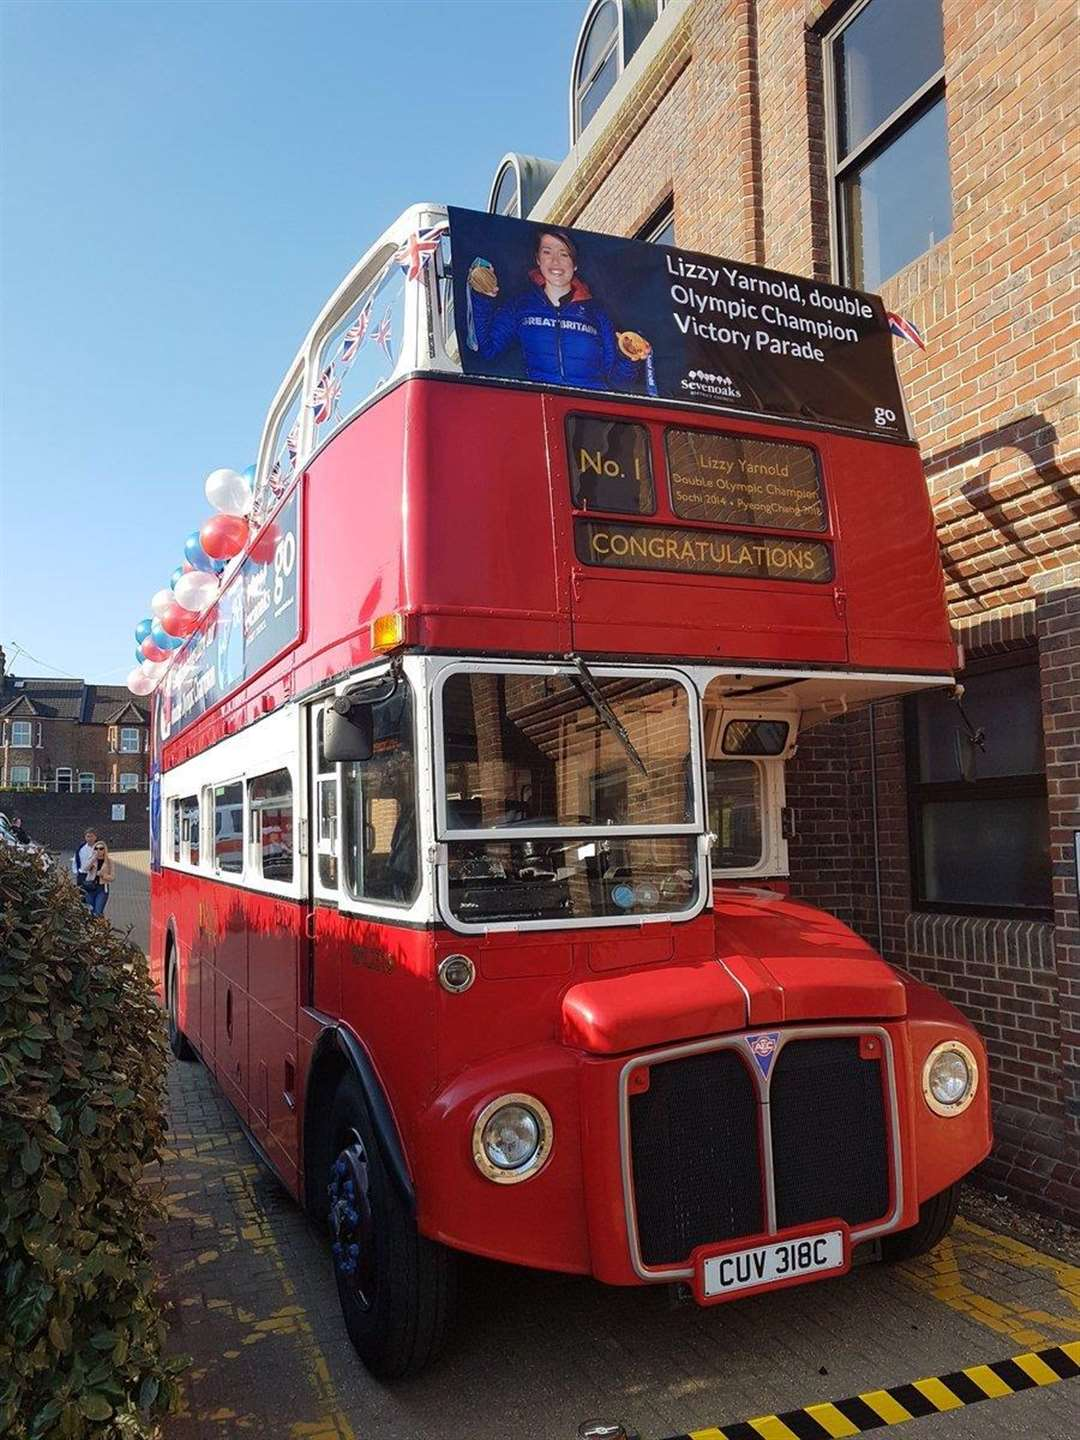 The open-top bus which will carry Lizzy Yarnold through Sevenoaks